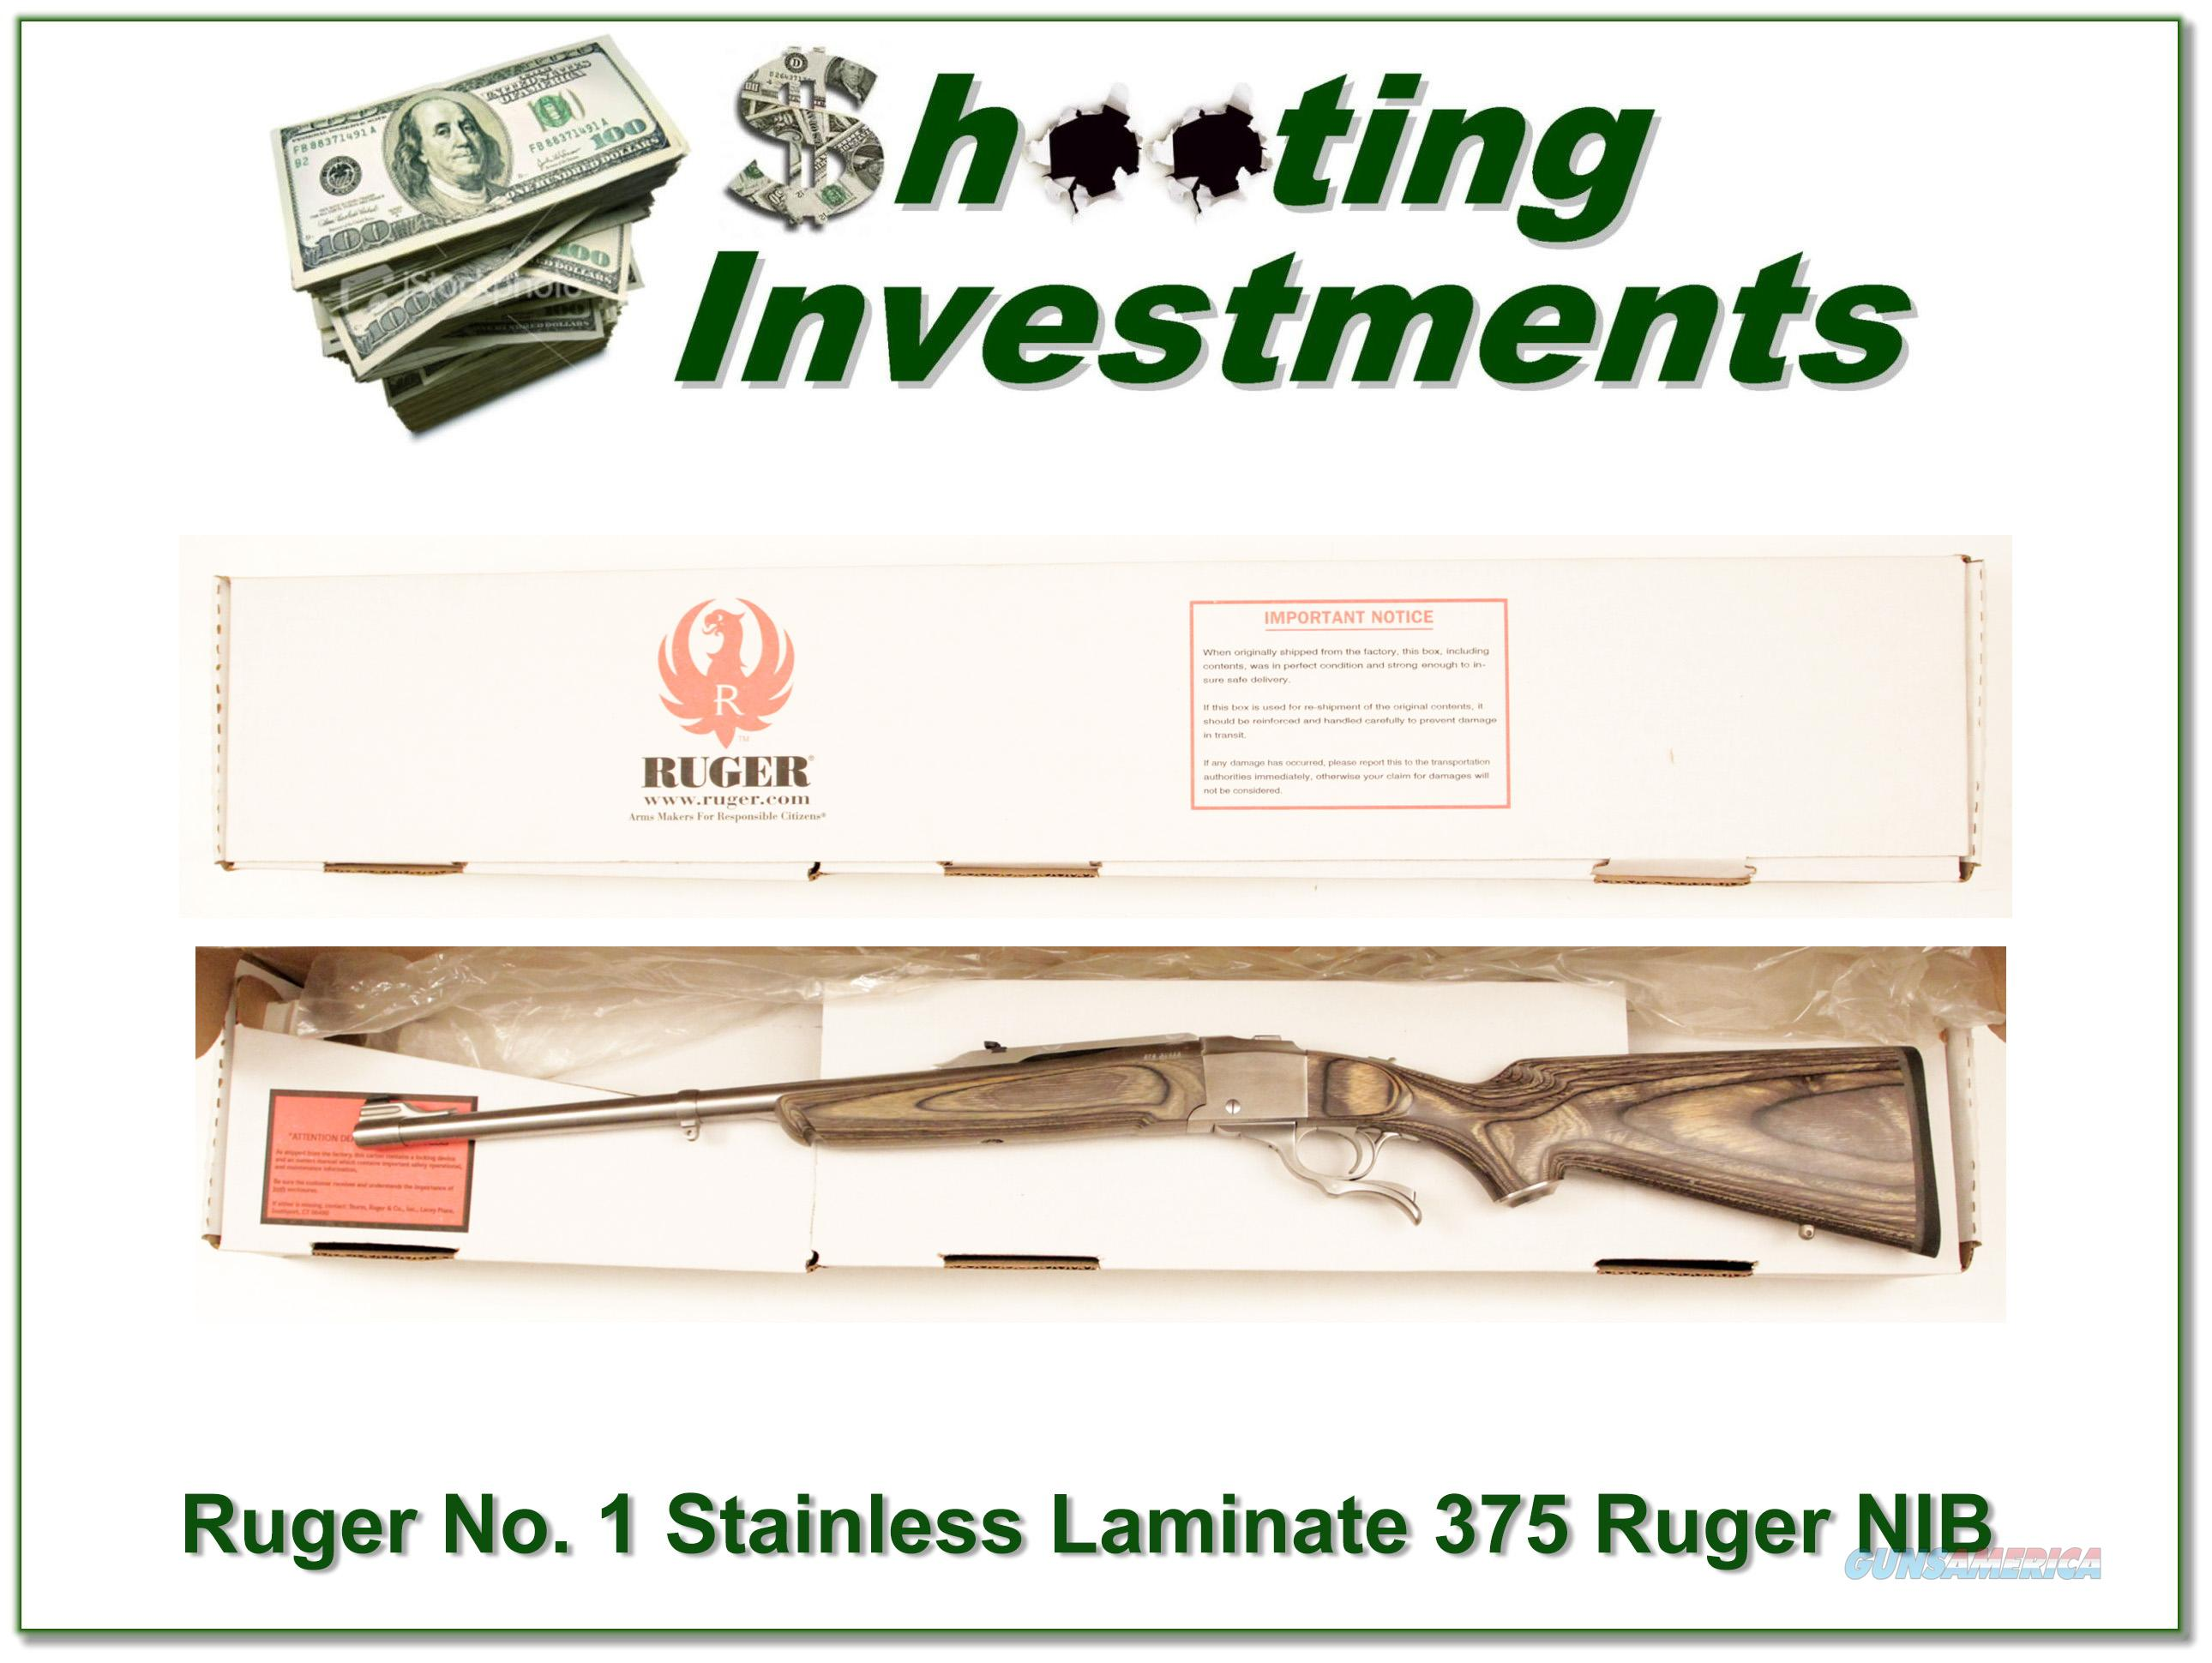 Ruger No. 1 Stainless Laminated 375 Ruger NIB!  Guns > Rifles > Ruger Rifles > #1 Type